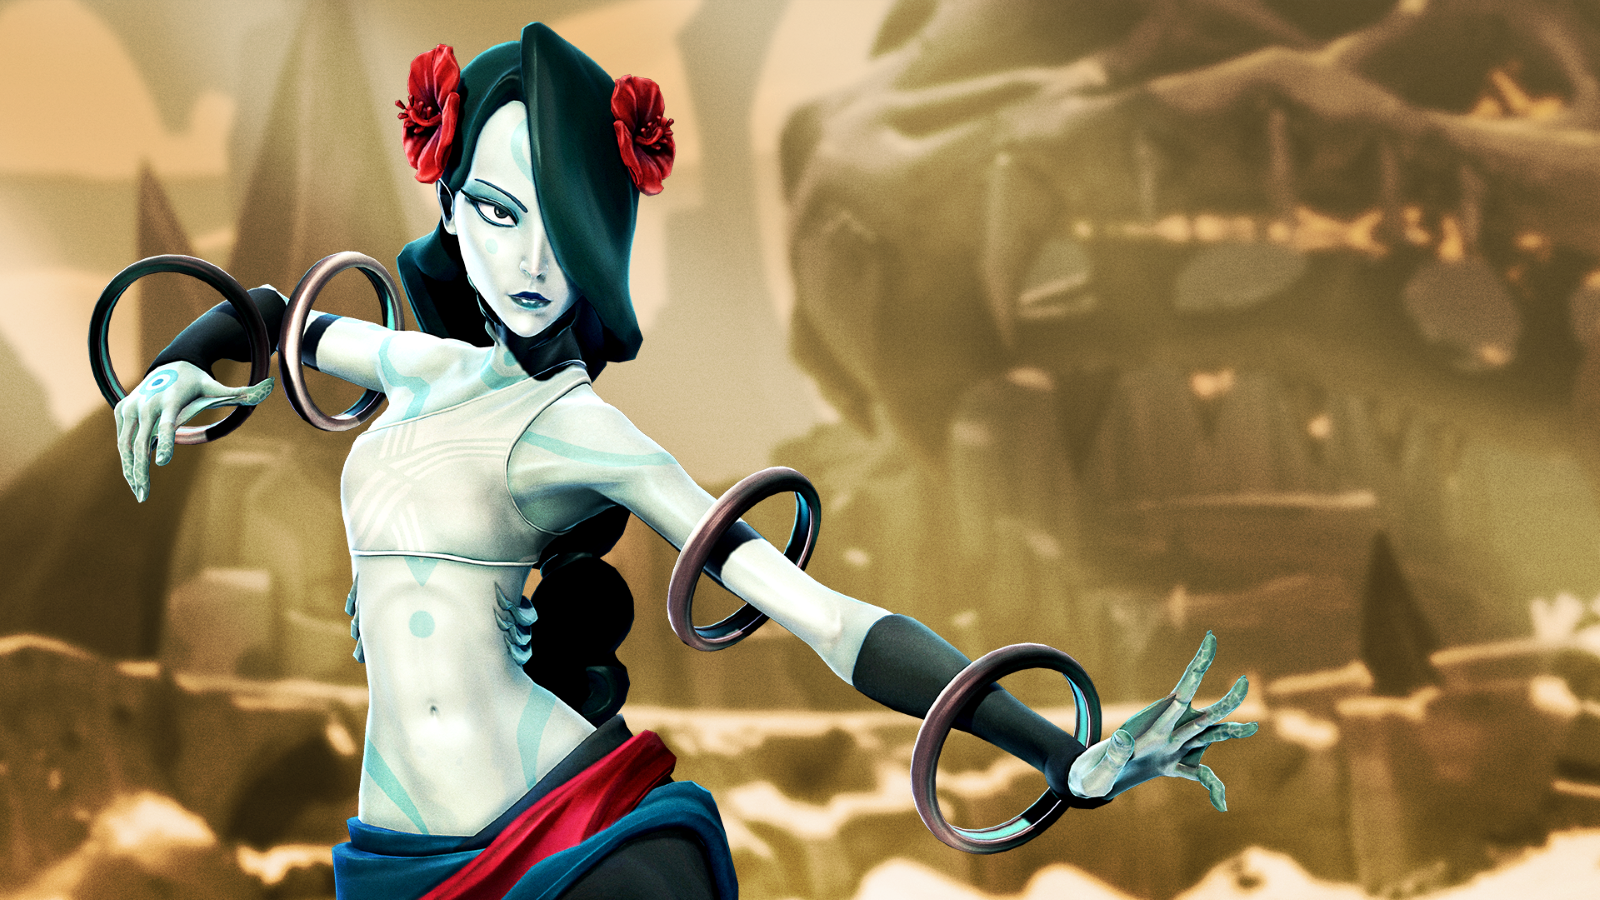 Battleborn's First Free DLC Hero Launch Dated